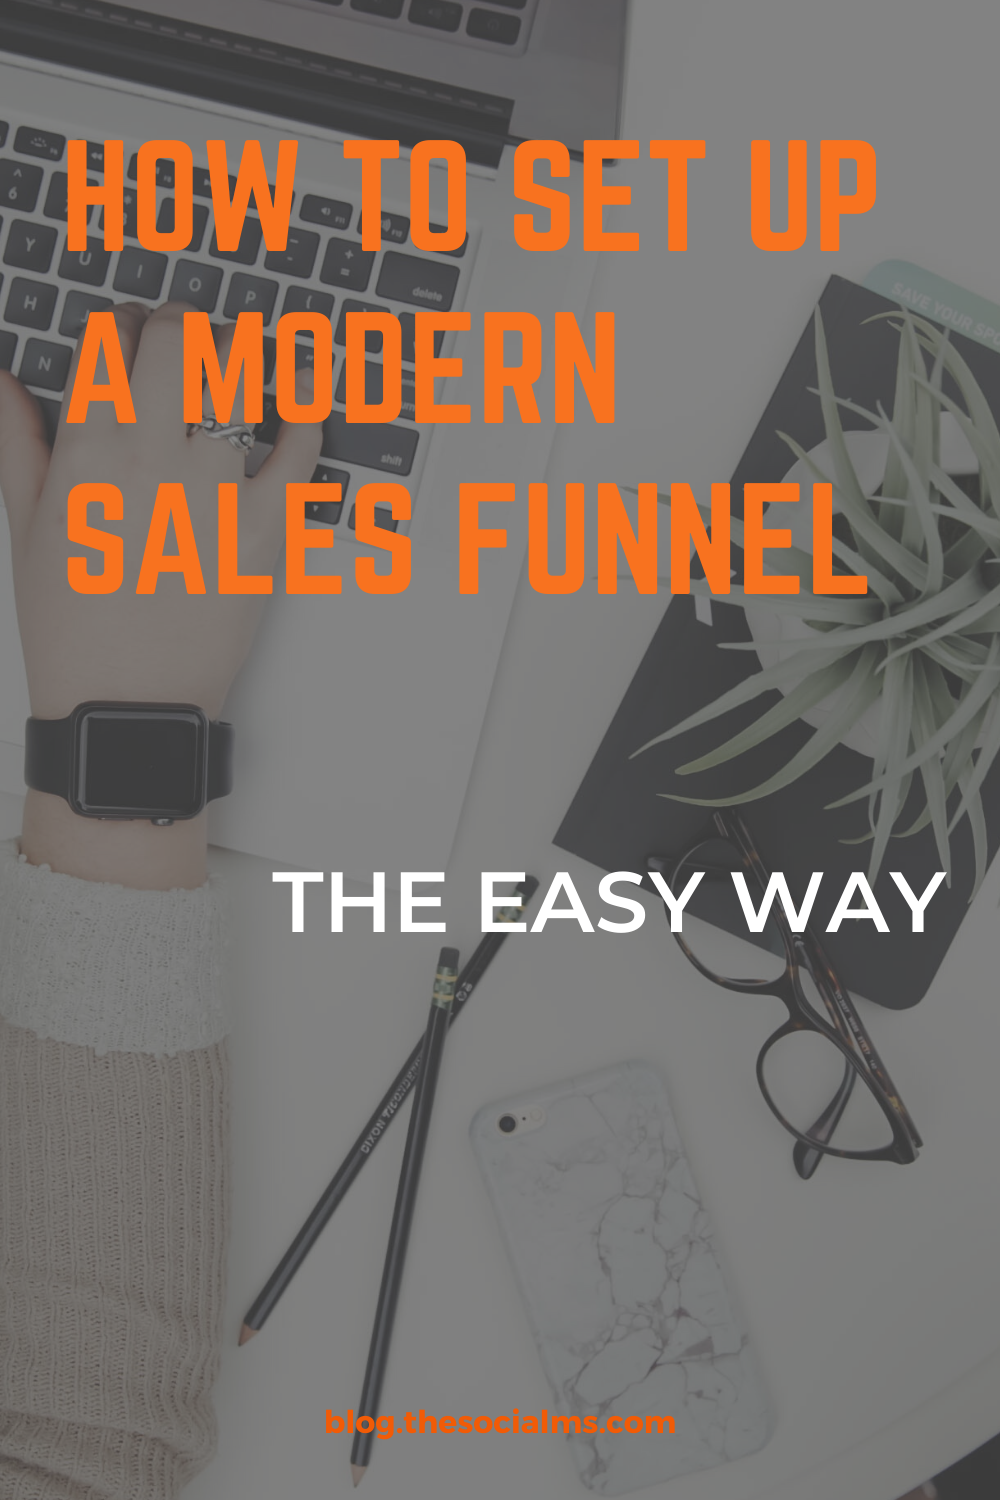 Whether you are a blogger looking to monetize, a small business looking to grow or a big corporation looking to expand - chances are you need a modern sales funnel. Here is how to set up a modern sales funnel for your blog or business. #bloggingtips #salesfunnel #makemoneyblogging #bloggingformoney #bloggingbusiness #smallbusinessmarketing #onlinebusiness #startupmarketing